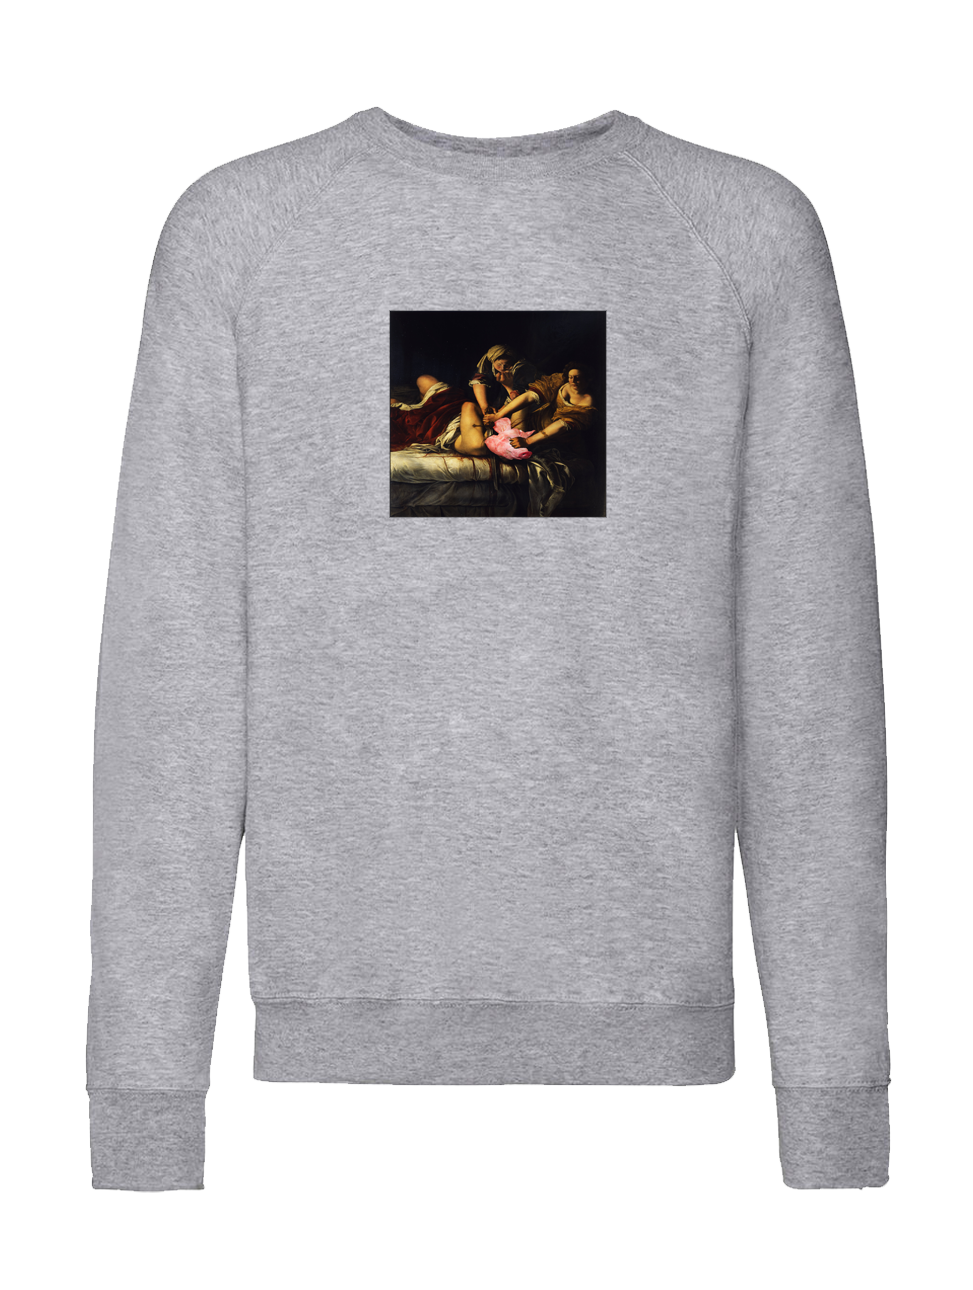 sweatshirt - Decapigtation